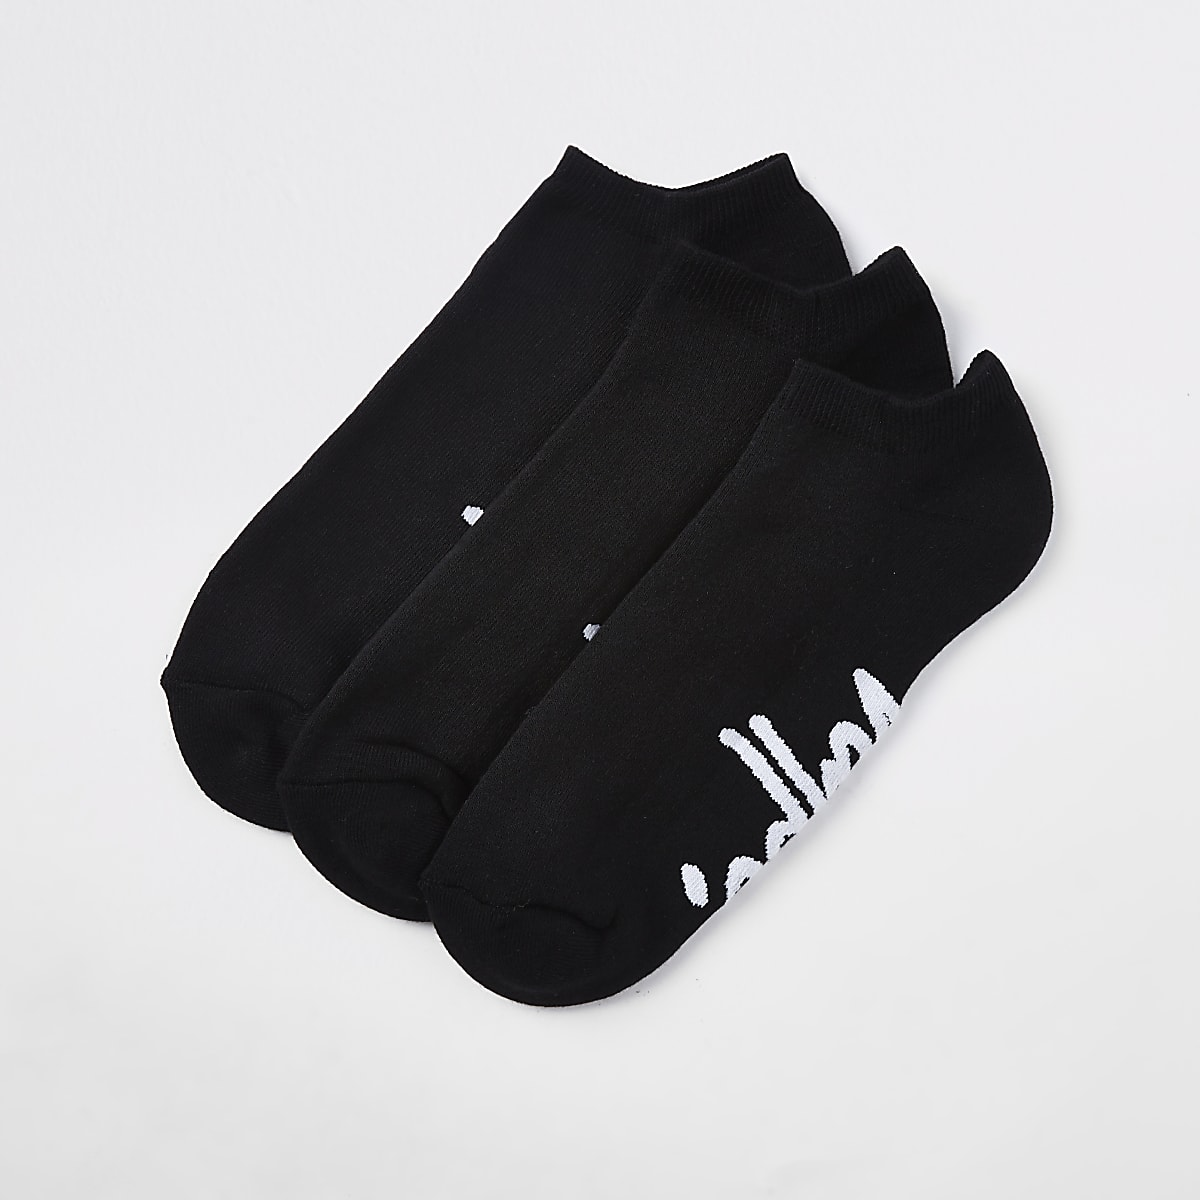 Hype black sneaker socks 3 pack